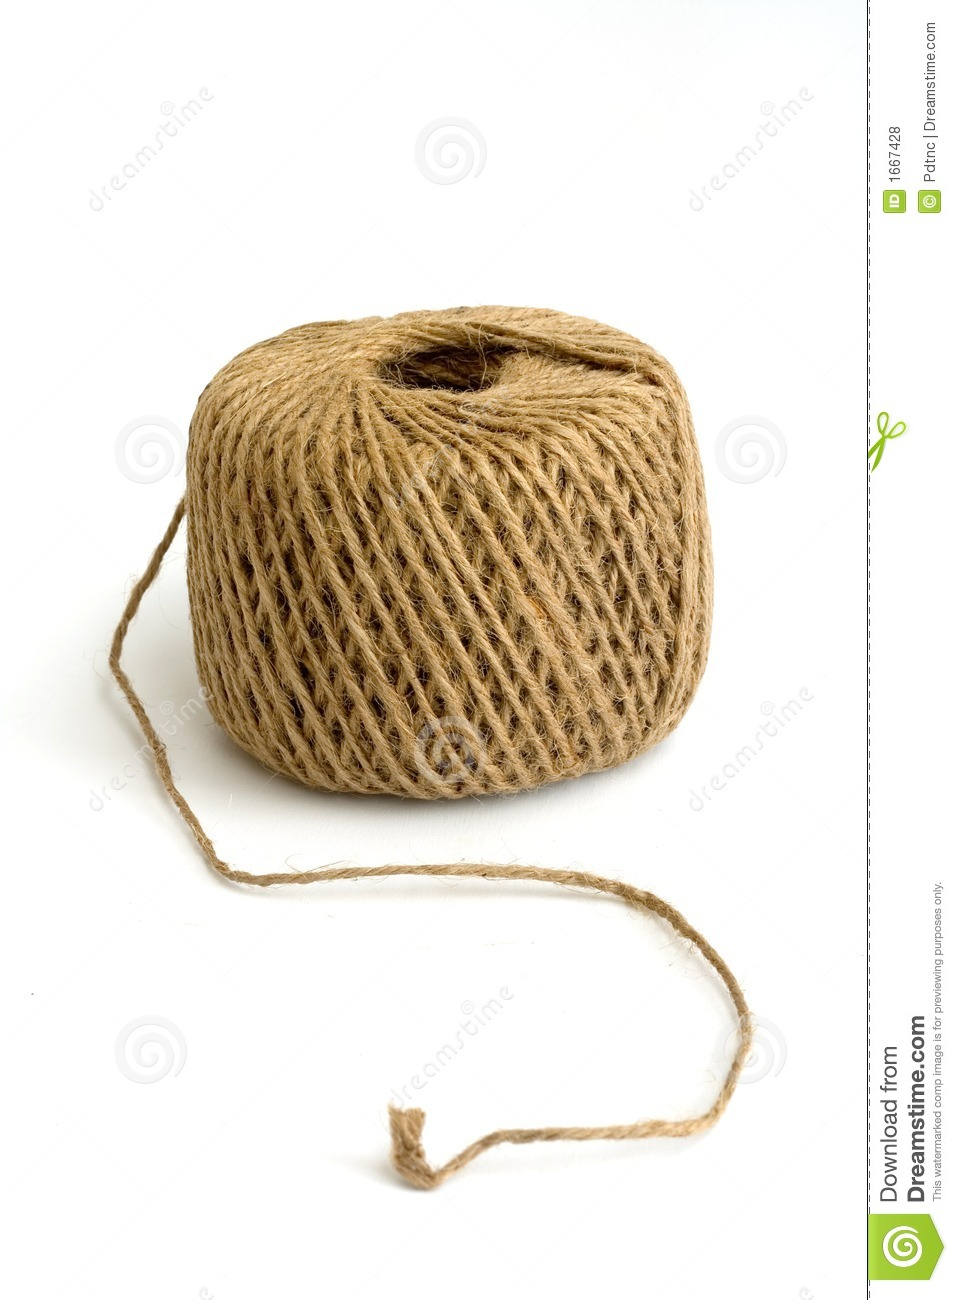 ball of twine. royalty-free stock photo. download ball of twine 7